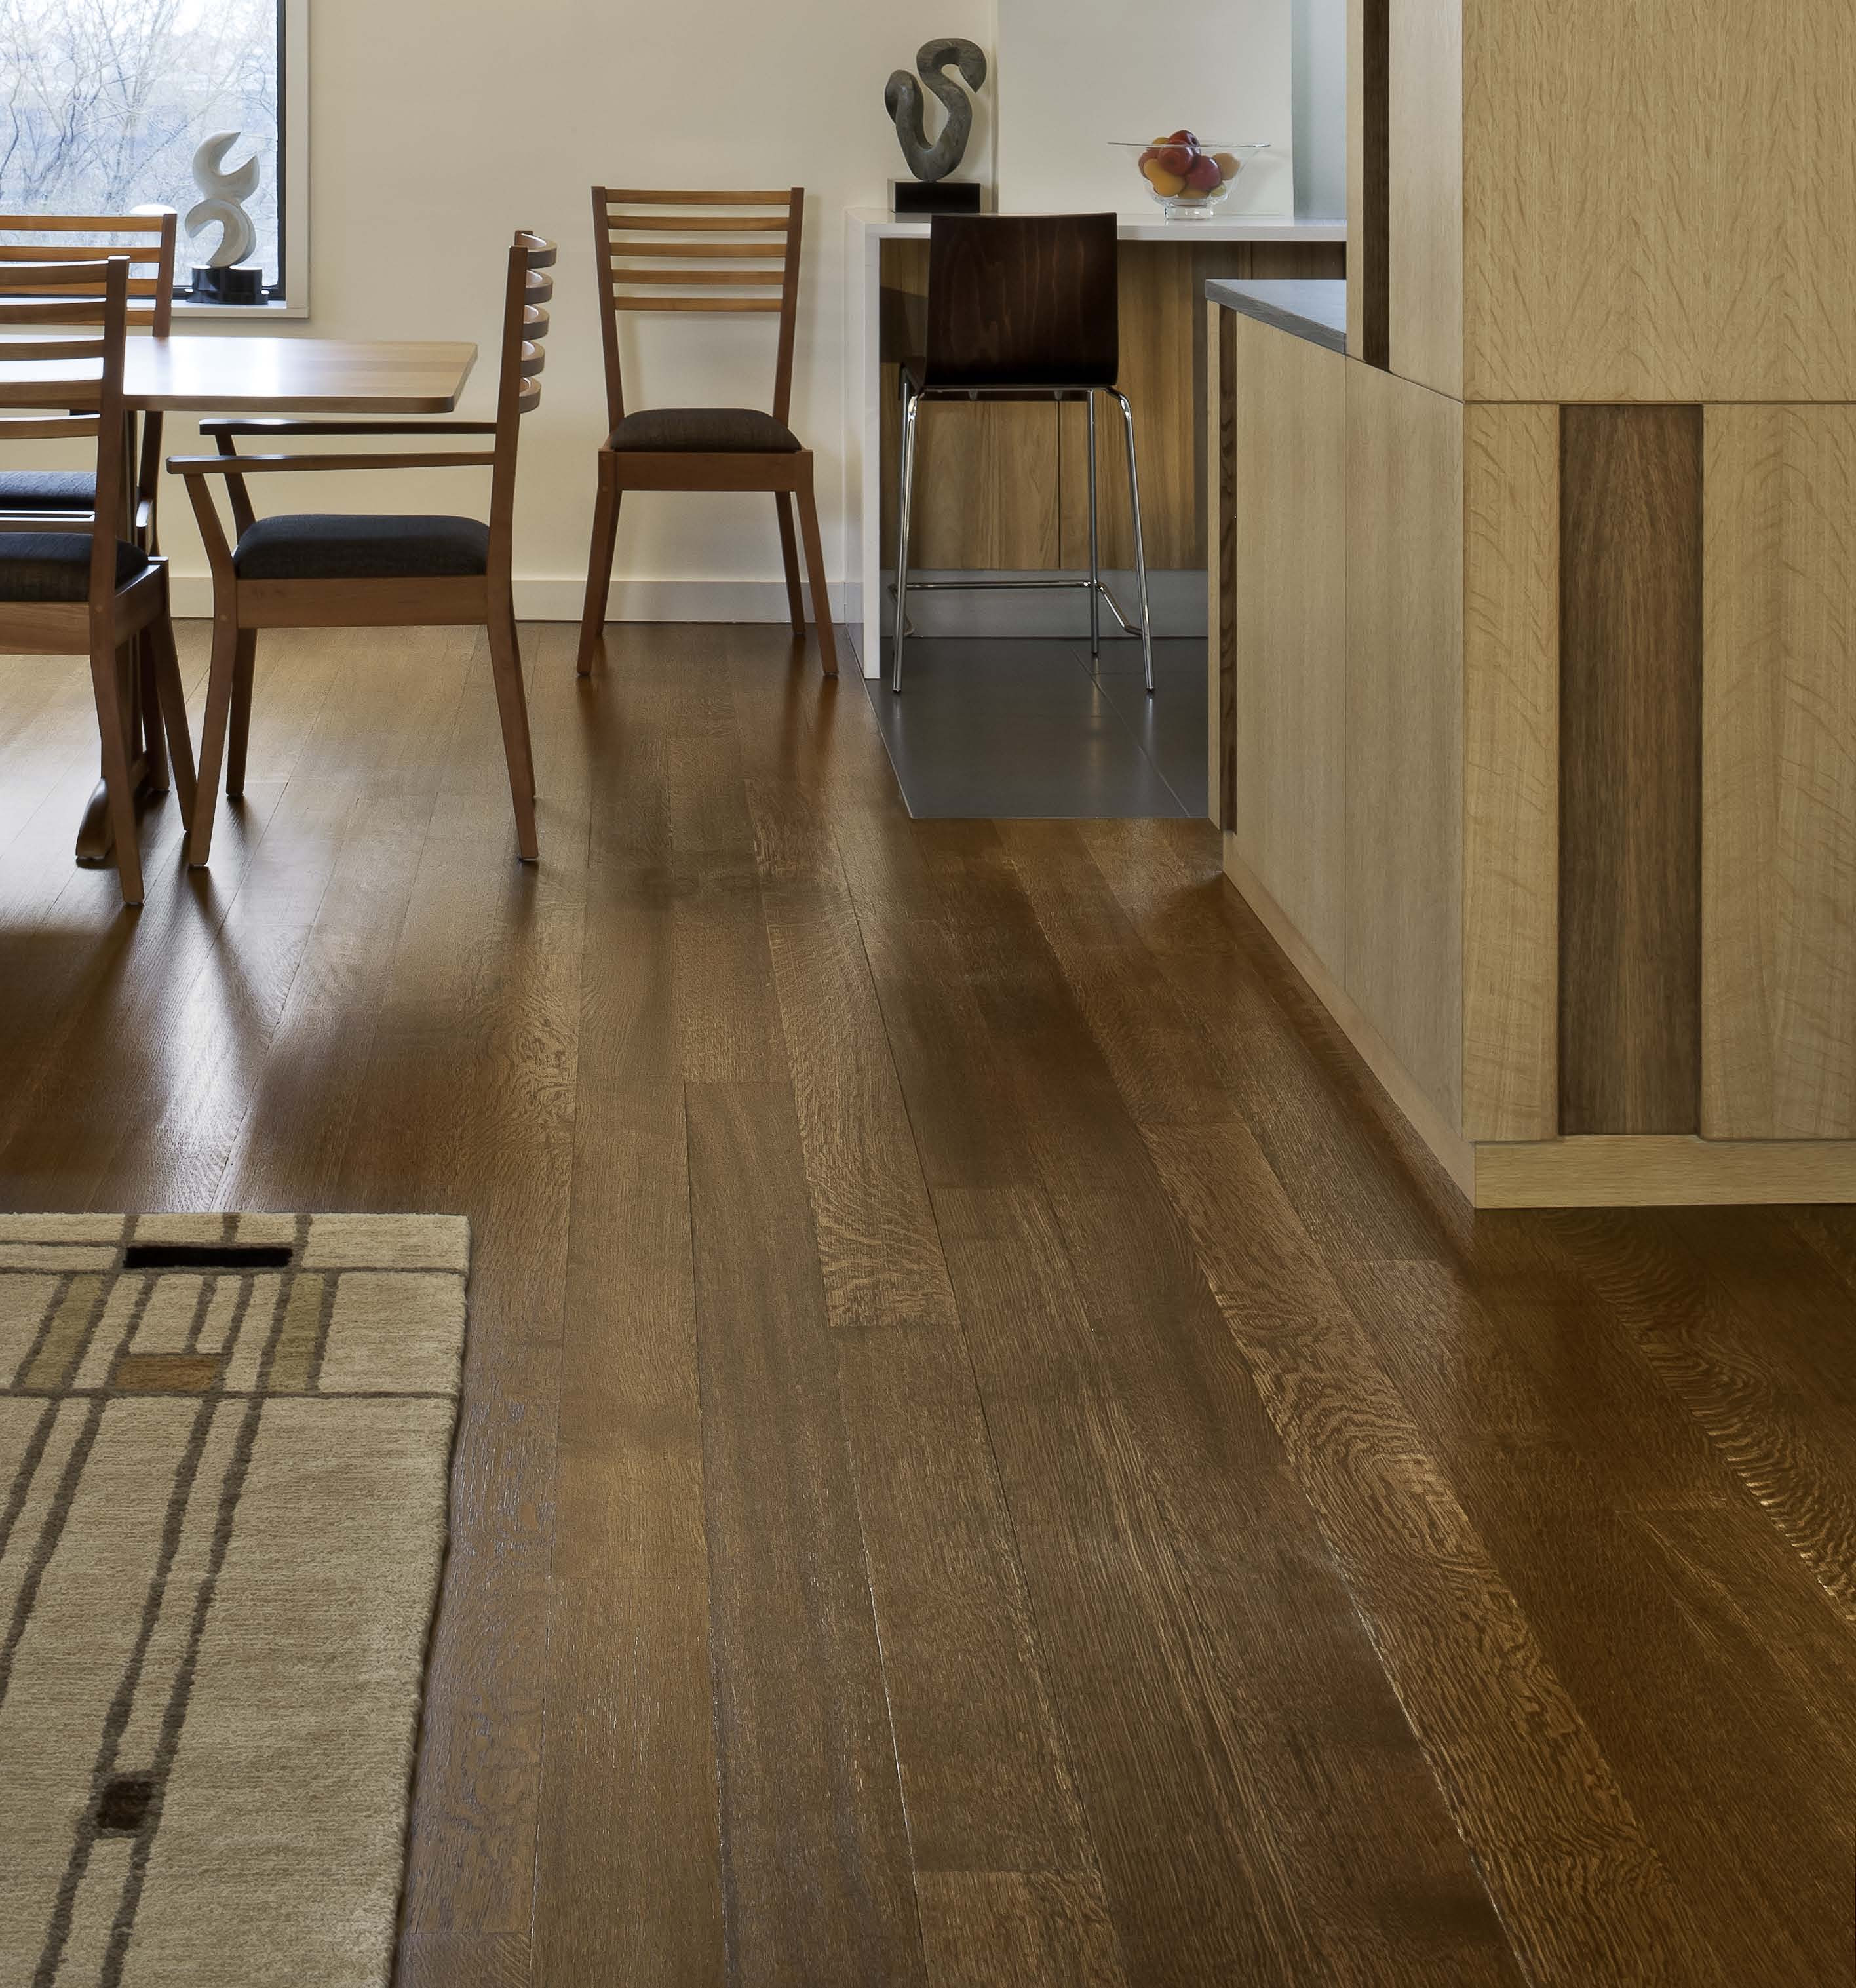 hardwood flooring sacramento ca of dahuacctvth com page 6 of 72 flooring decoration ideas page 6 throughout resilient vinyl plank flooring